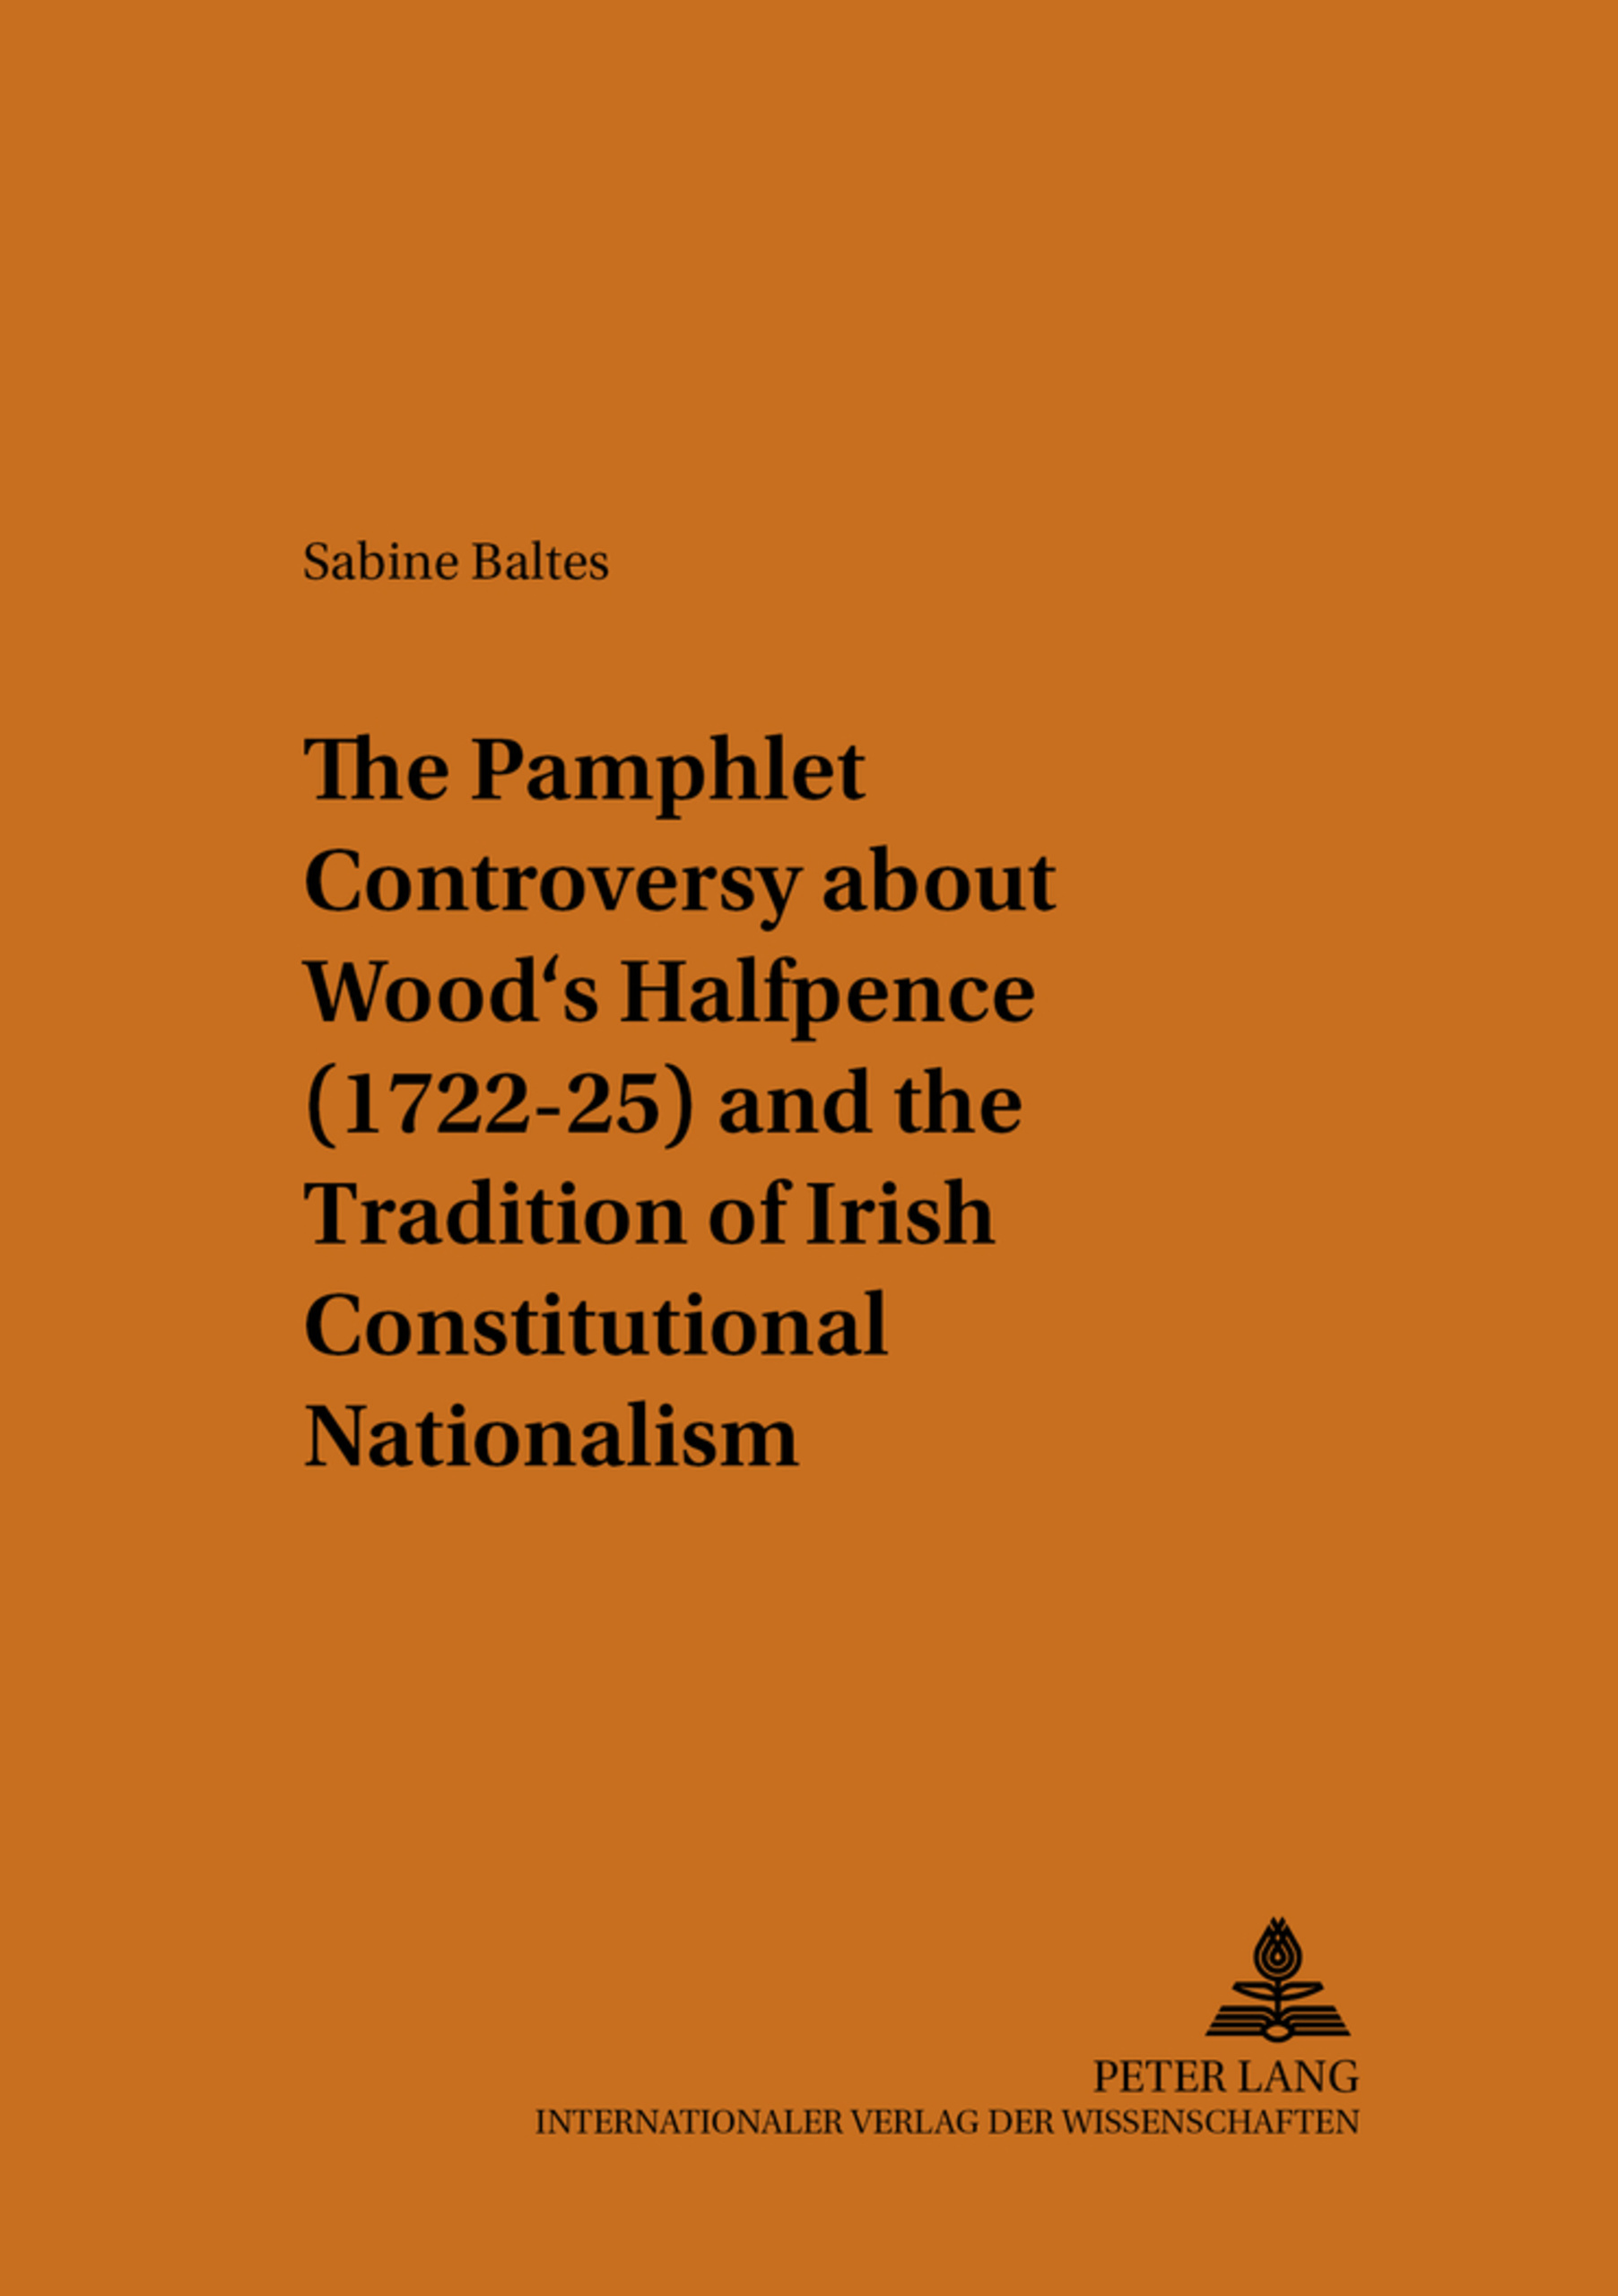 Title: The Pamphlet Controversy about Wood's Halfpence (1722-25) and the Tradition of Irish Constitutional Nationalism